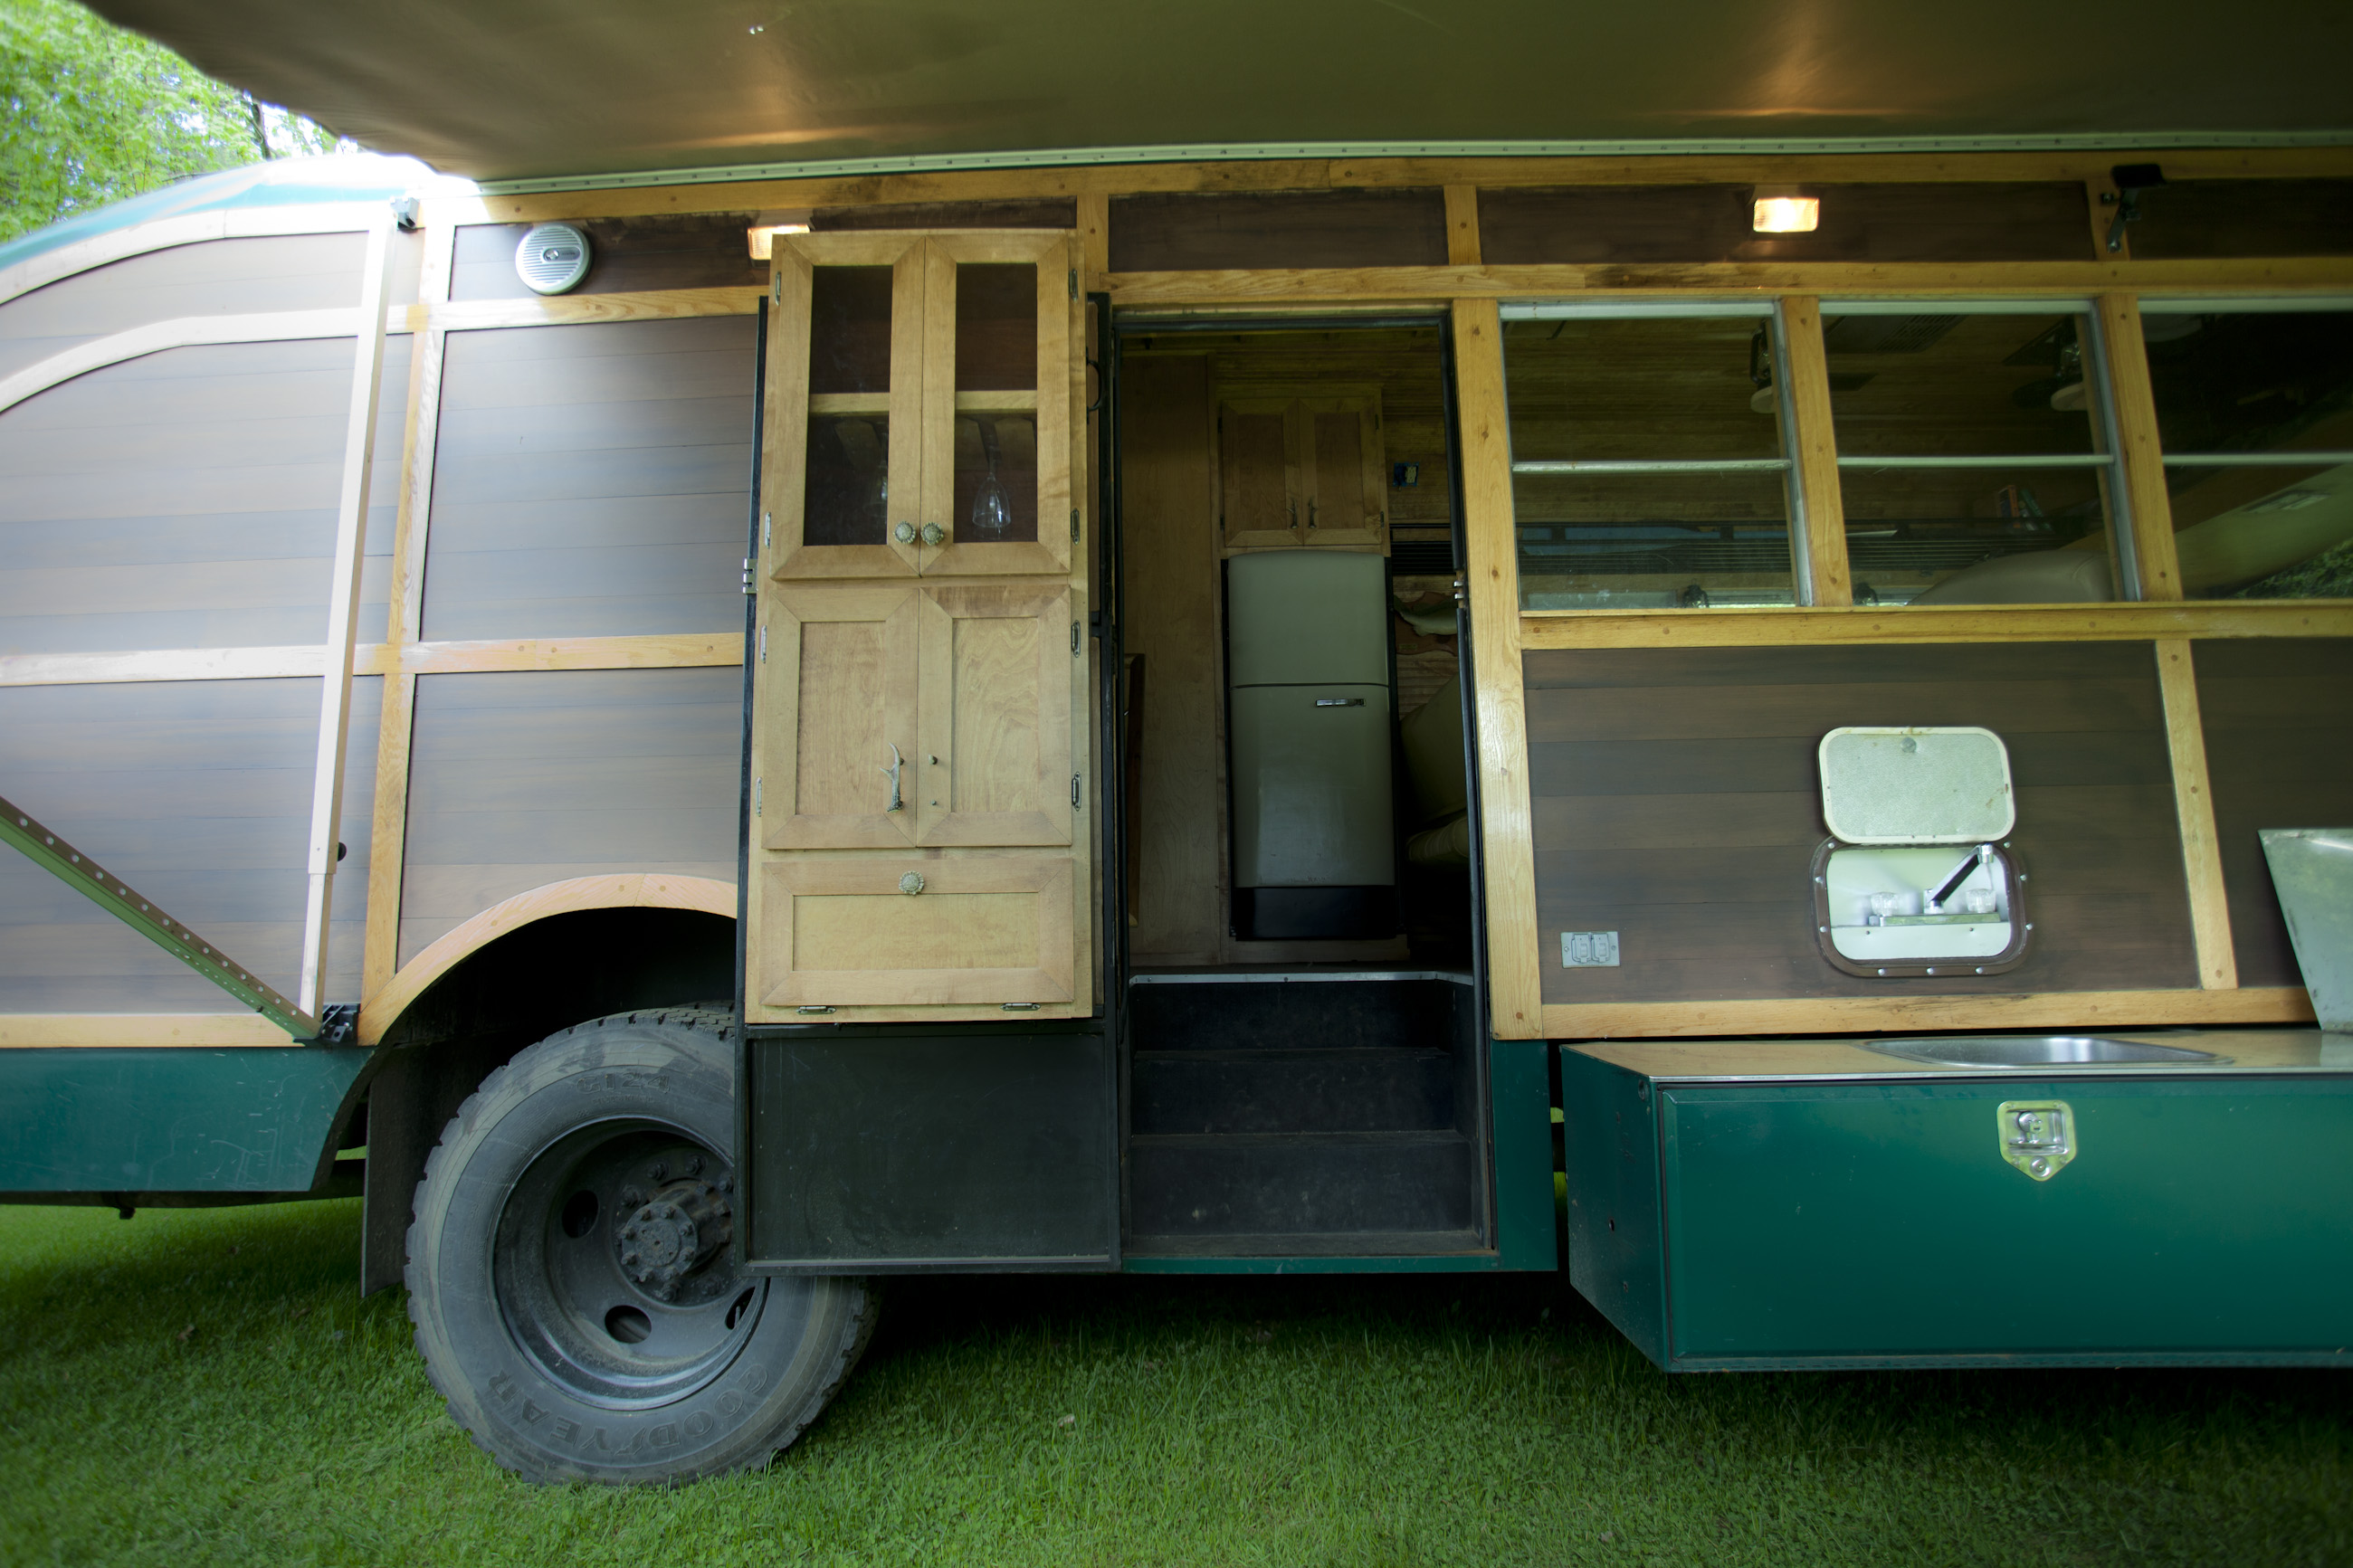 Exceptional Converted School Bus Camper David Dillon Llc School Bus Camper Hauler School Bus Camper Ideas curbed School Bus Camper